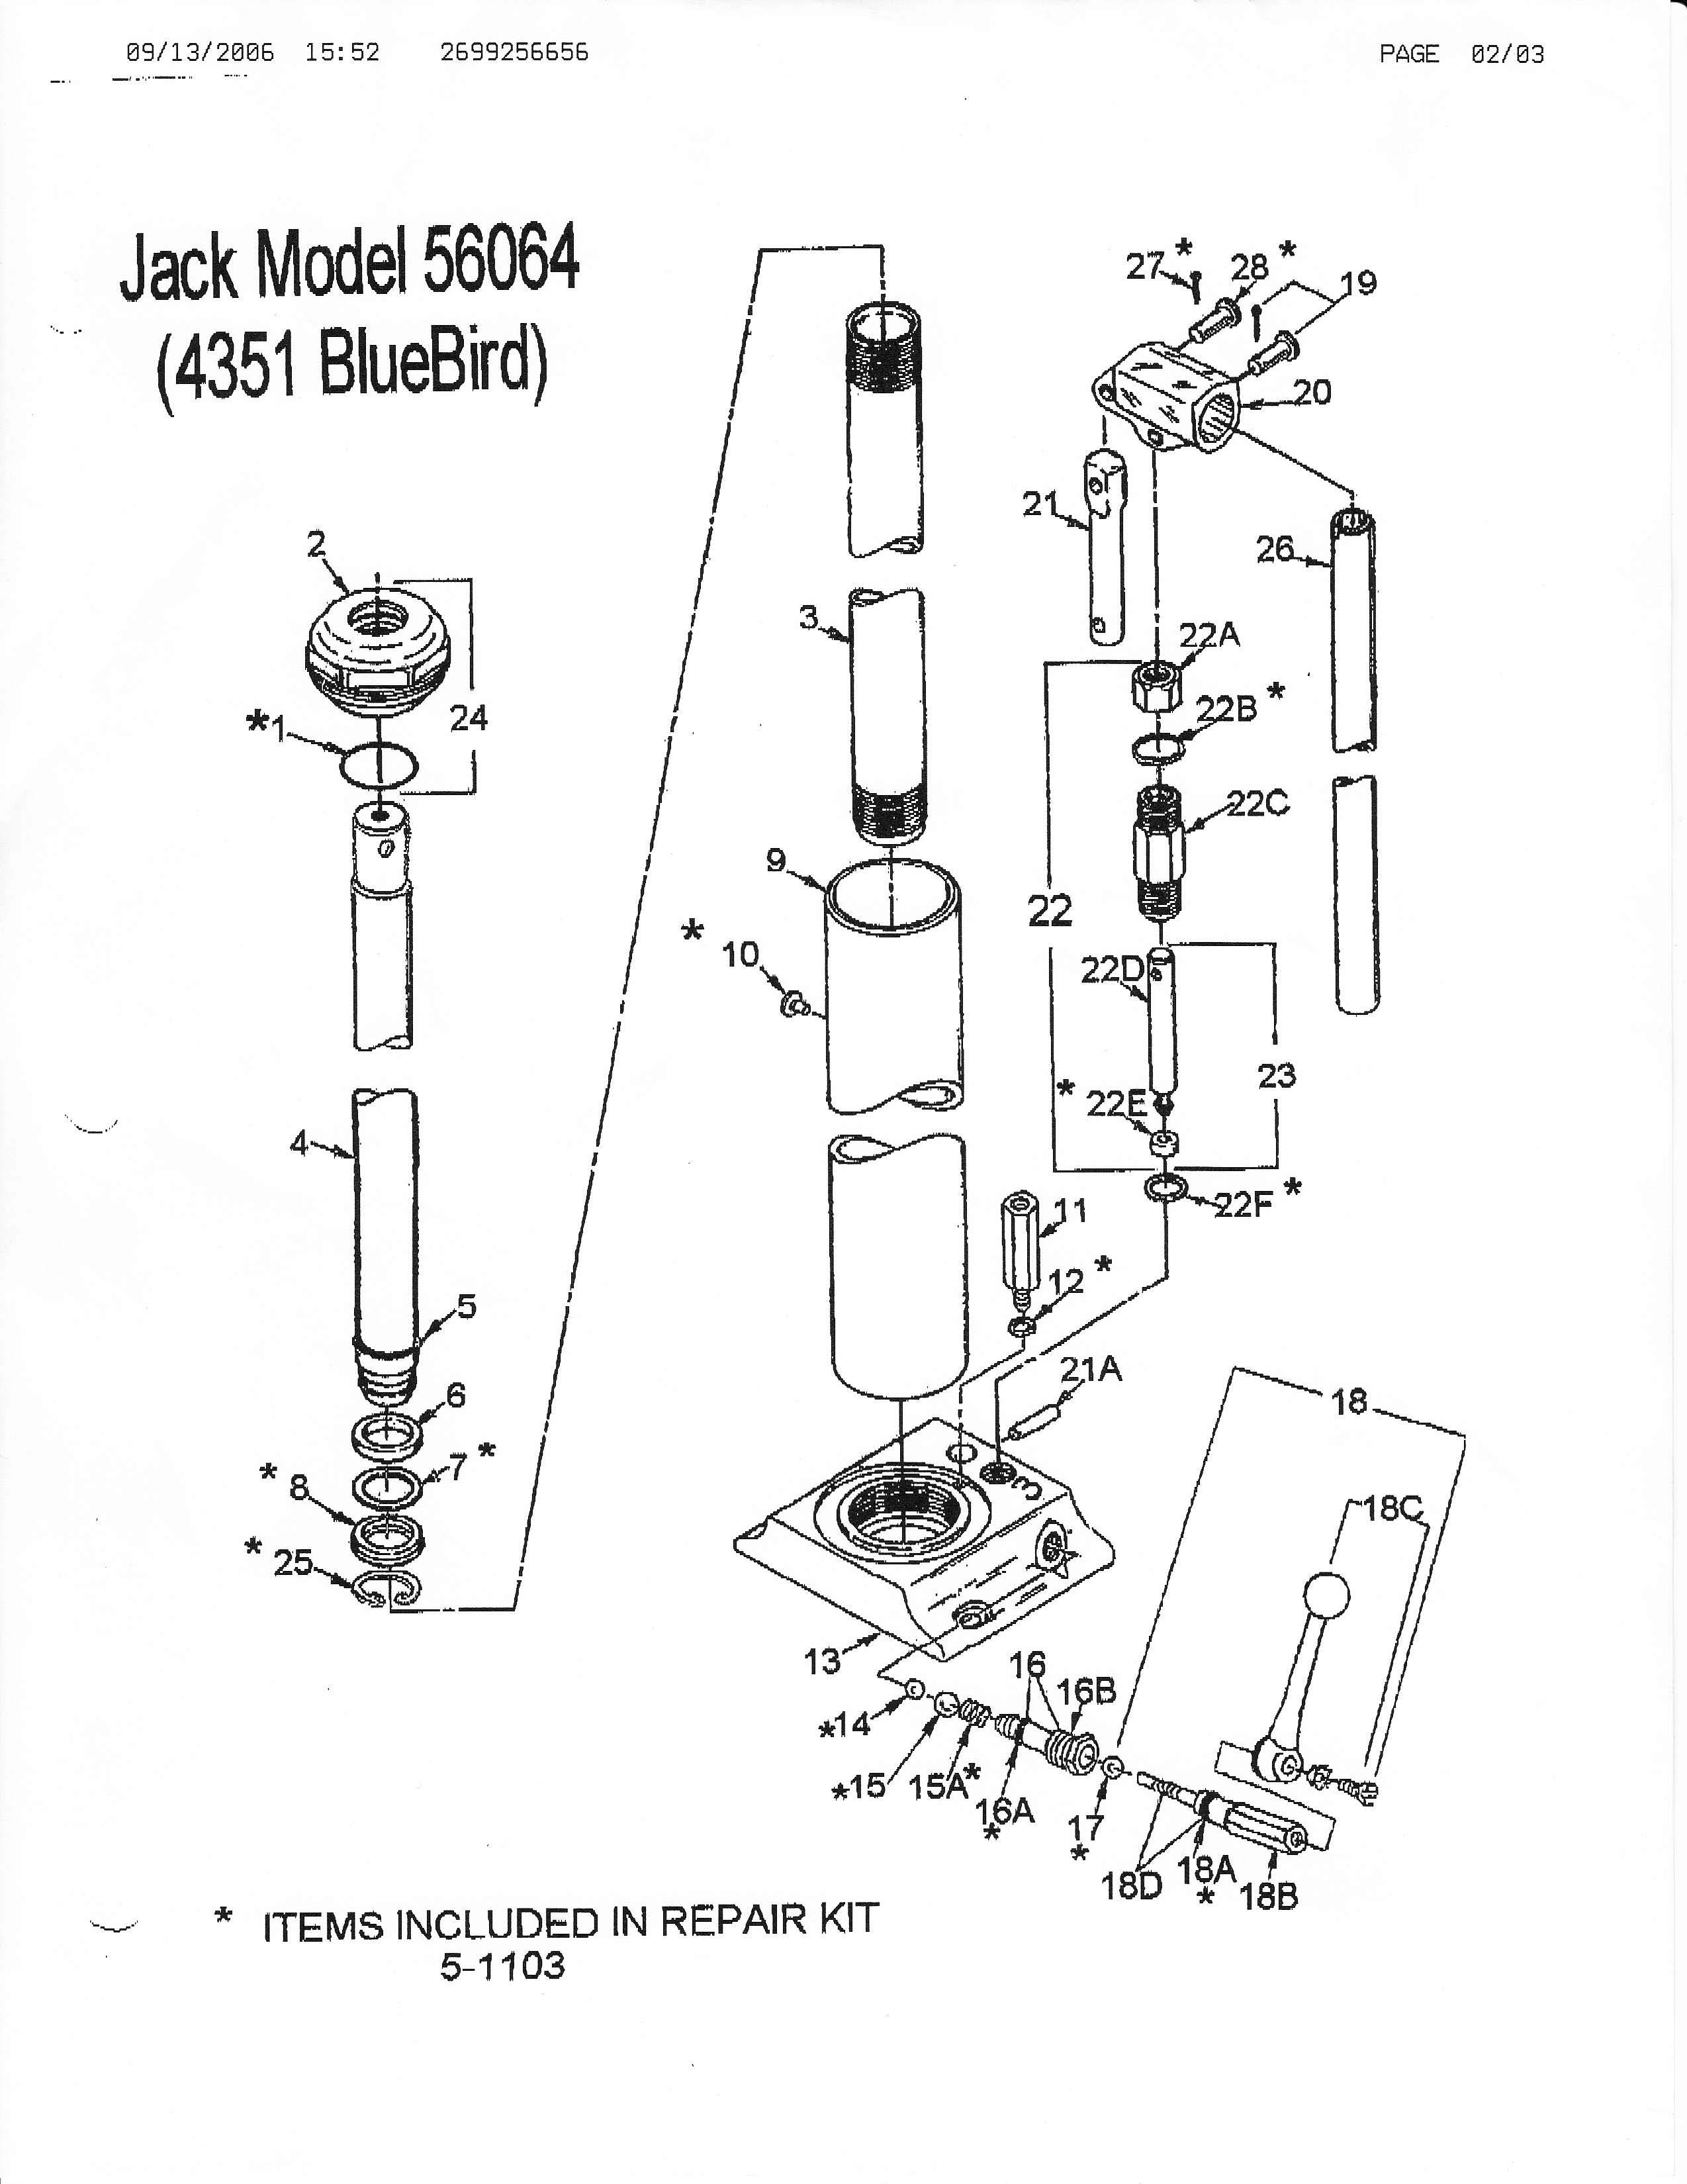 Hydraulic Jack Diagram Giftsforsubs